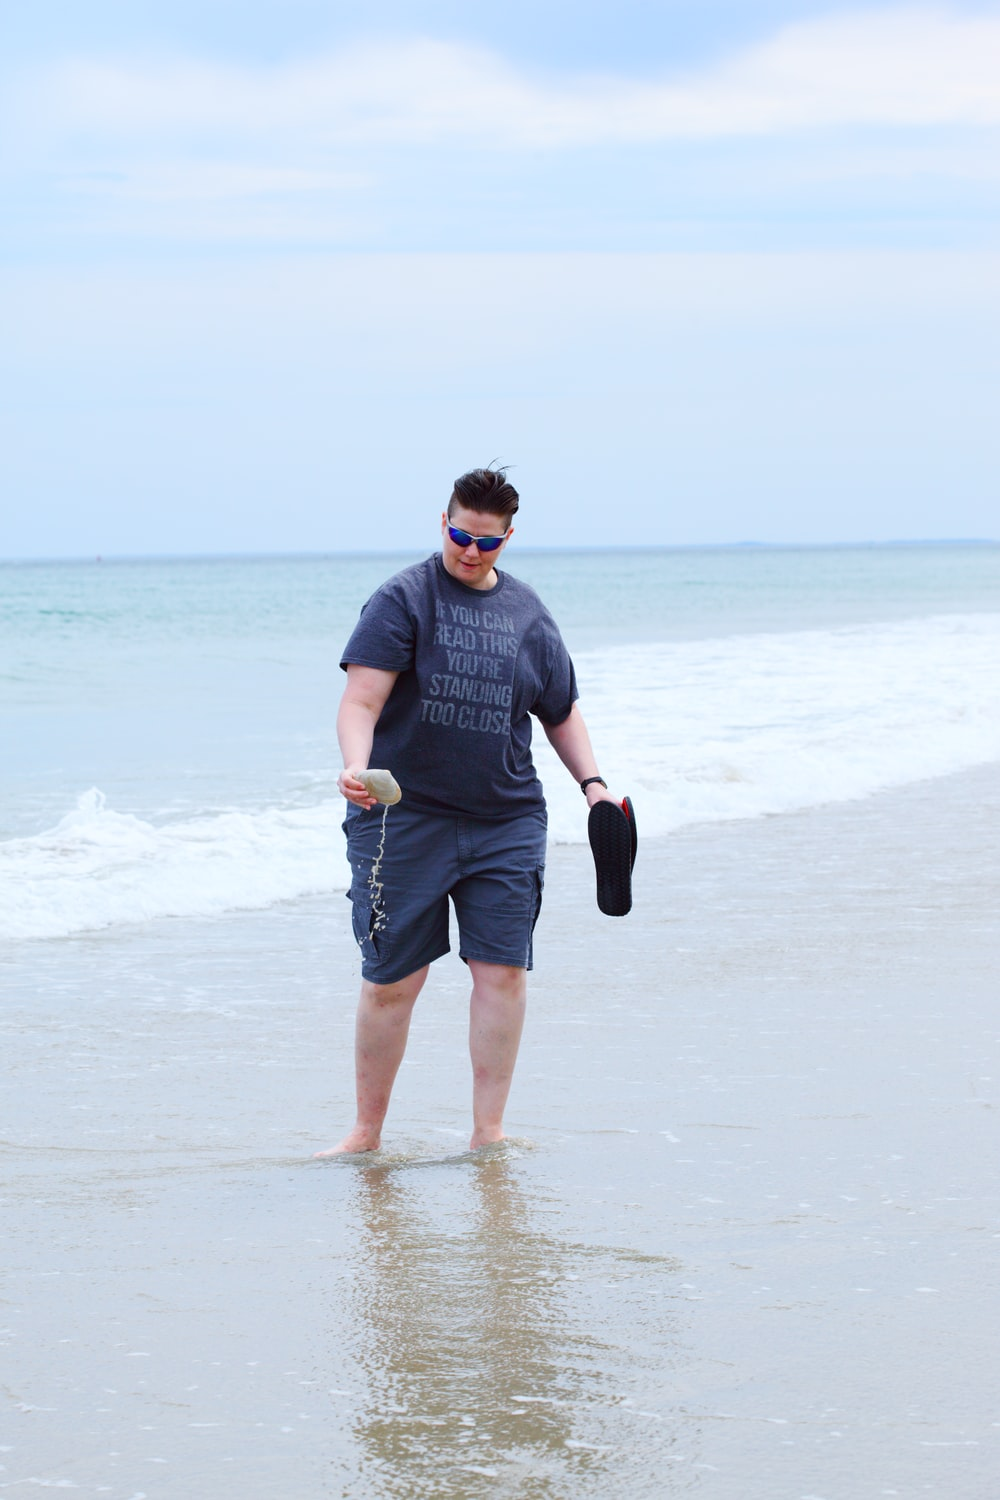 man in gray crew neck t-shirt and black shorts running on beach during daytime